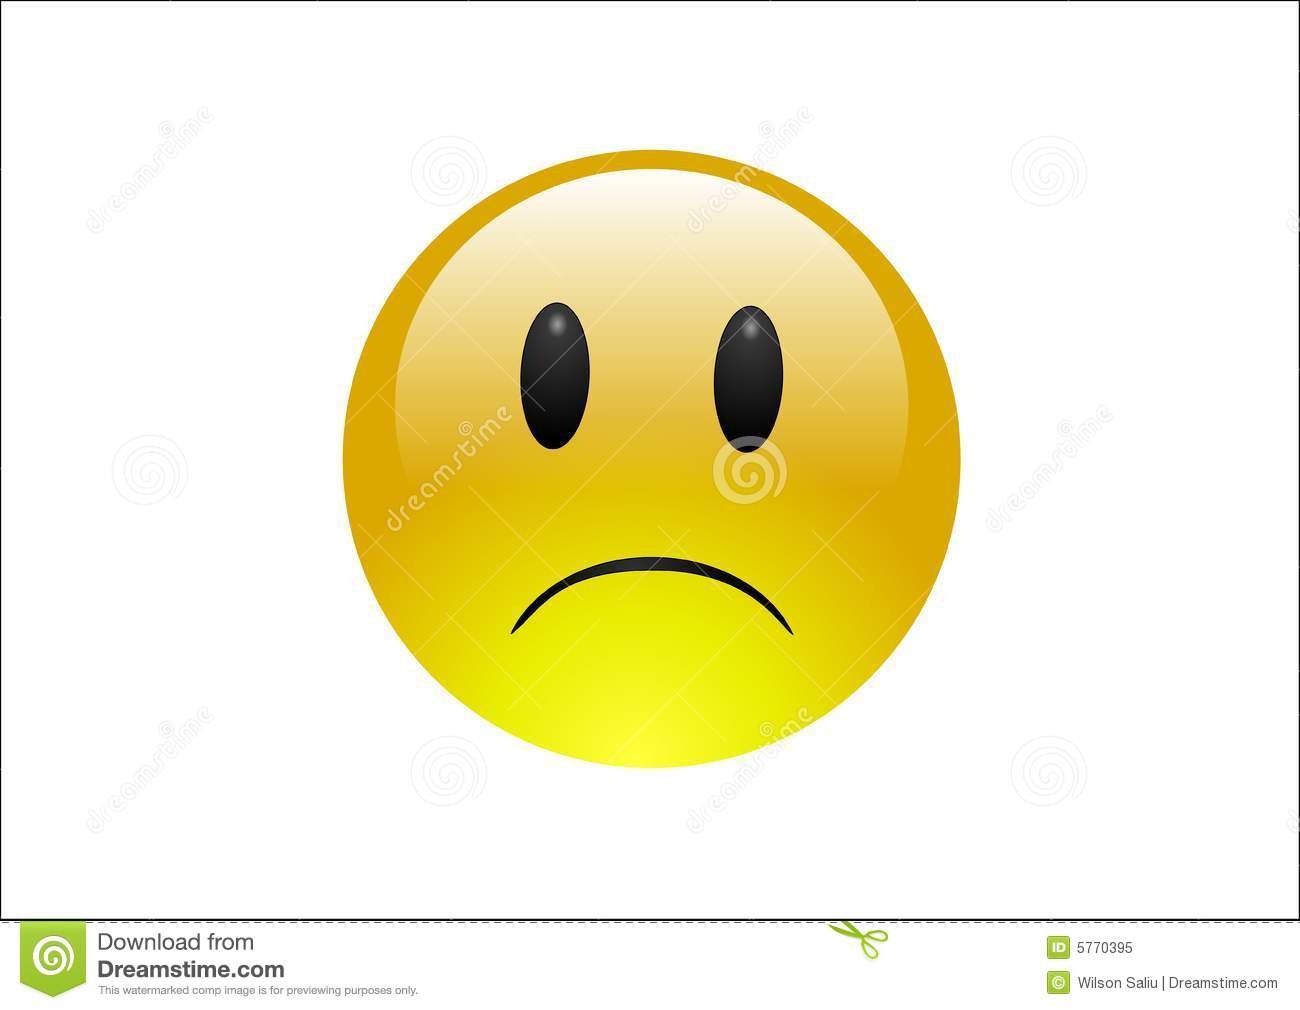 Aqua Emoticons - Sad Royalty Free Stock Photo - Image: 5770395